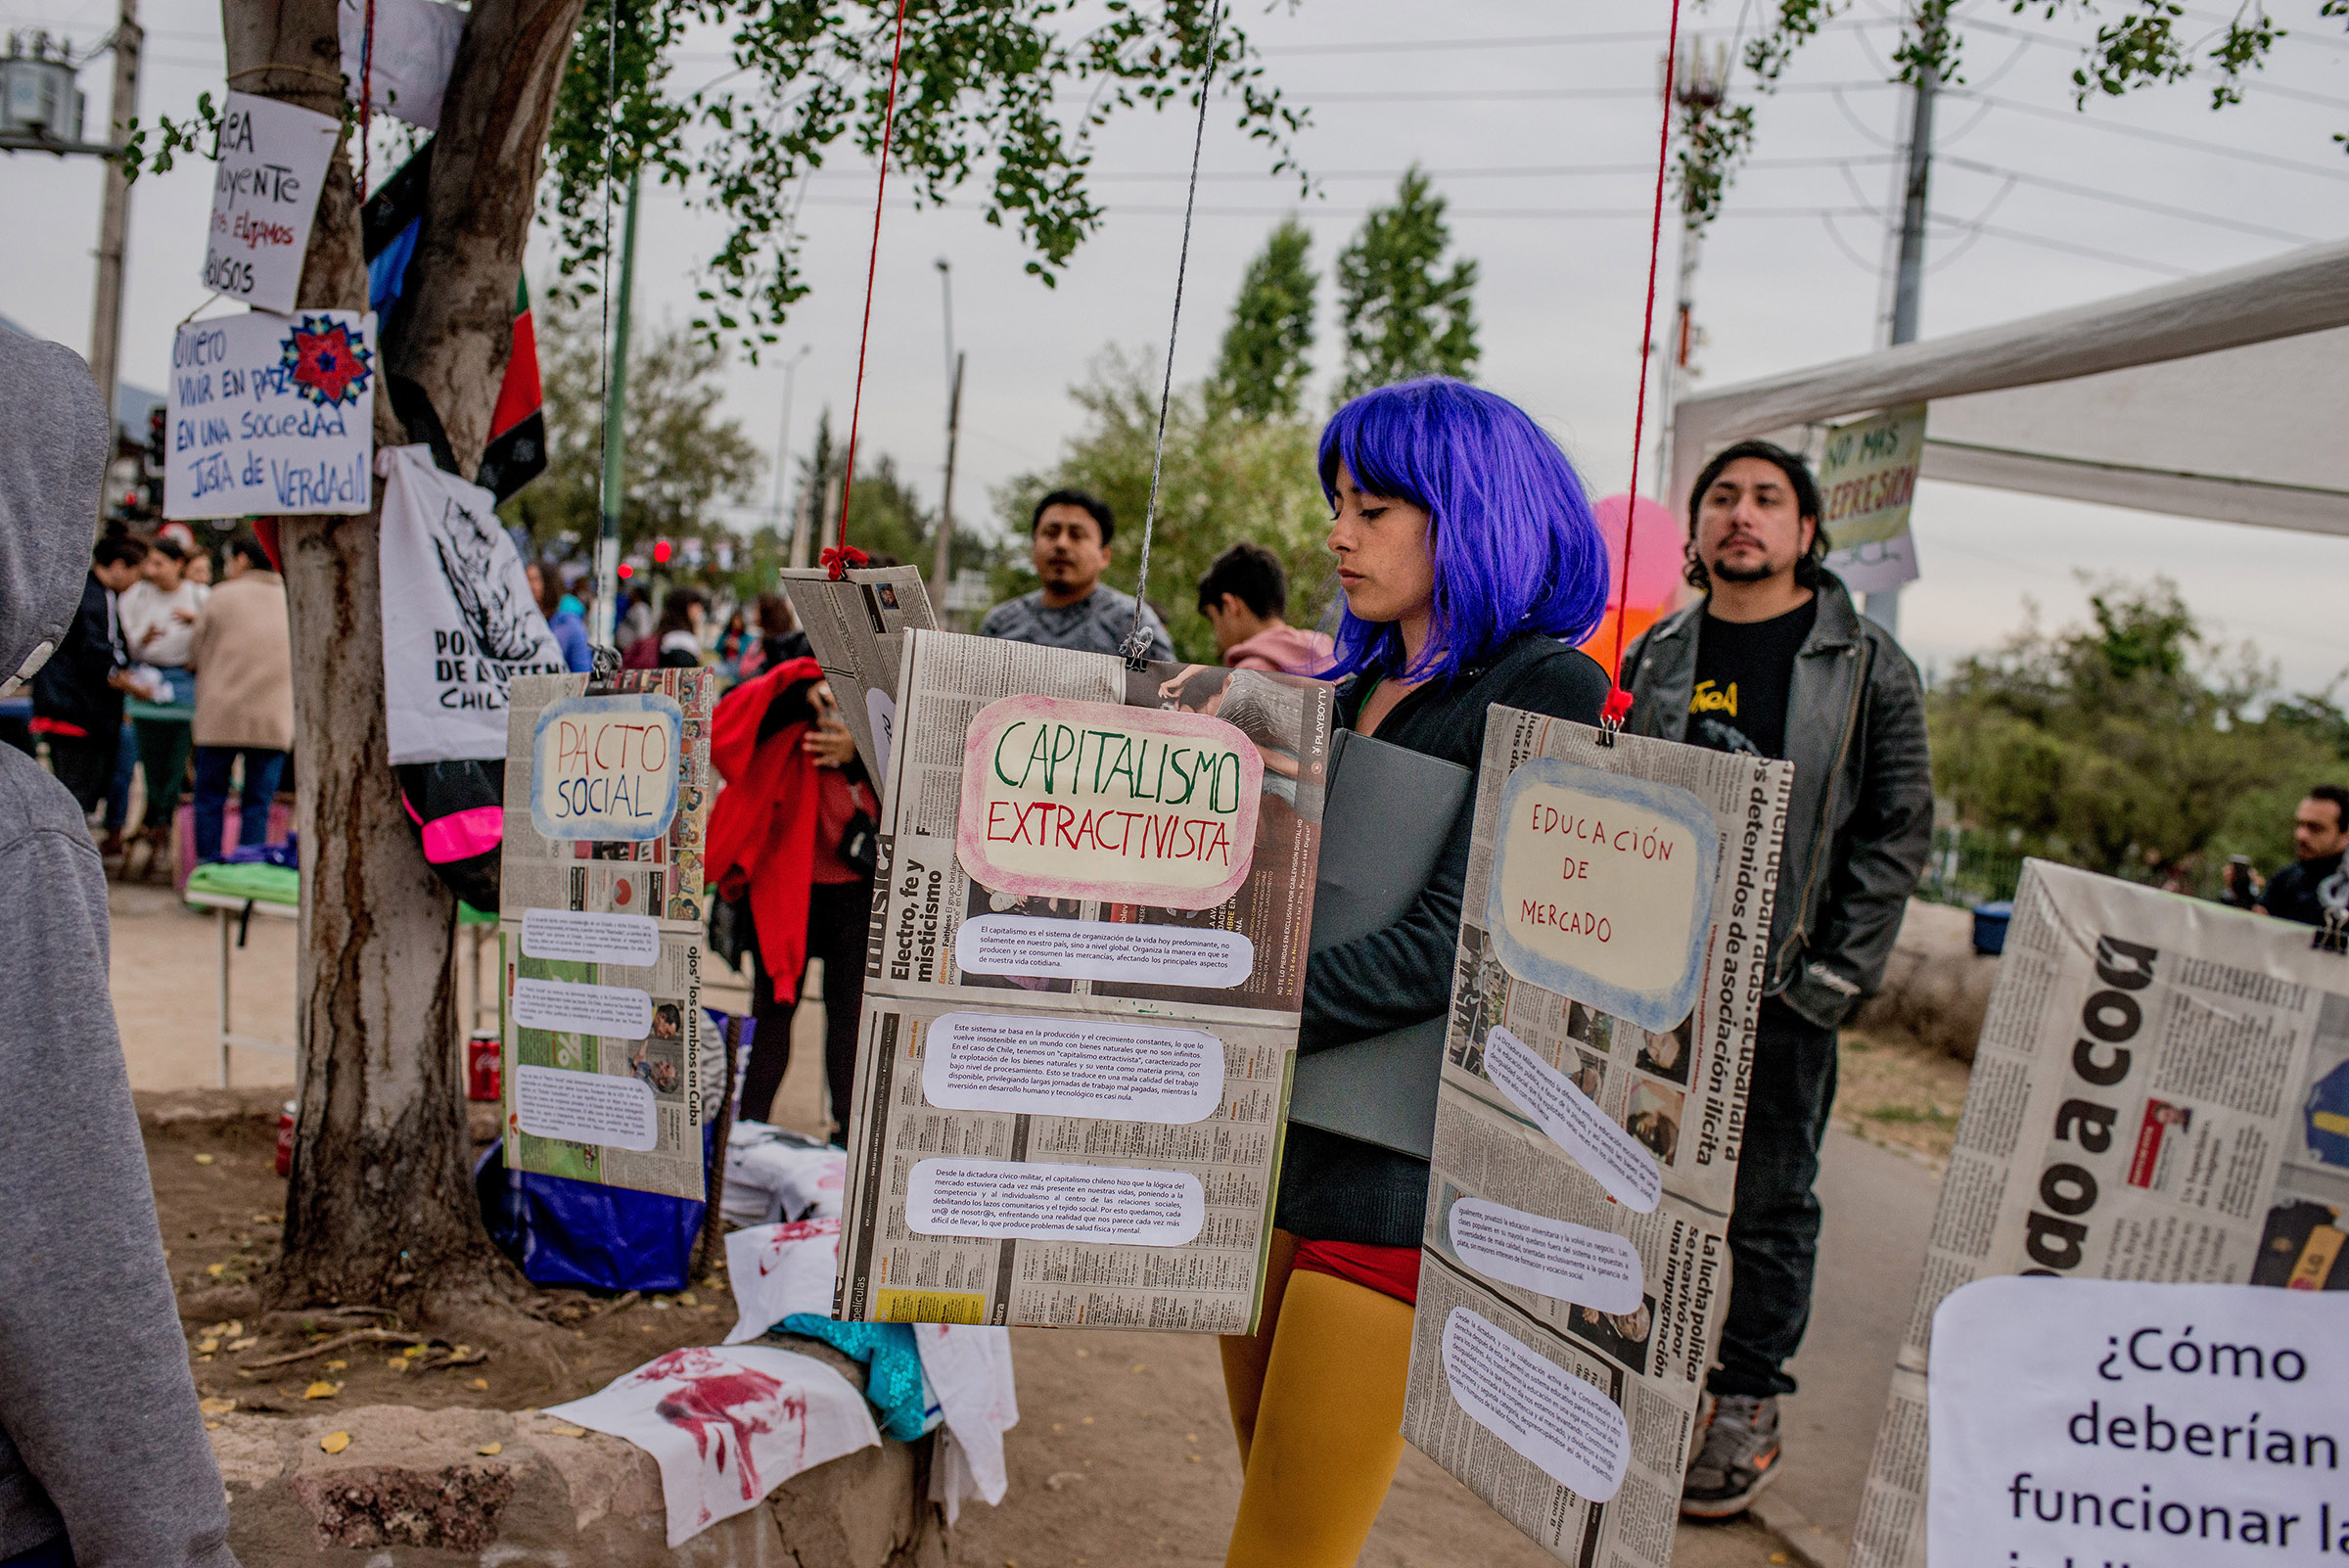 A gathering in Peñalolén, a neighborhood of Santiago, focuses on issues like education, economy and the Constitution, in Chile, on Oct. 27, 2019.